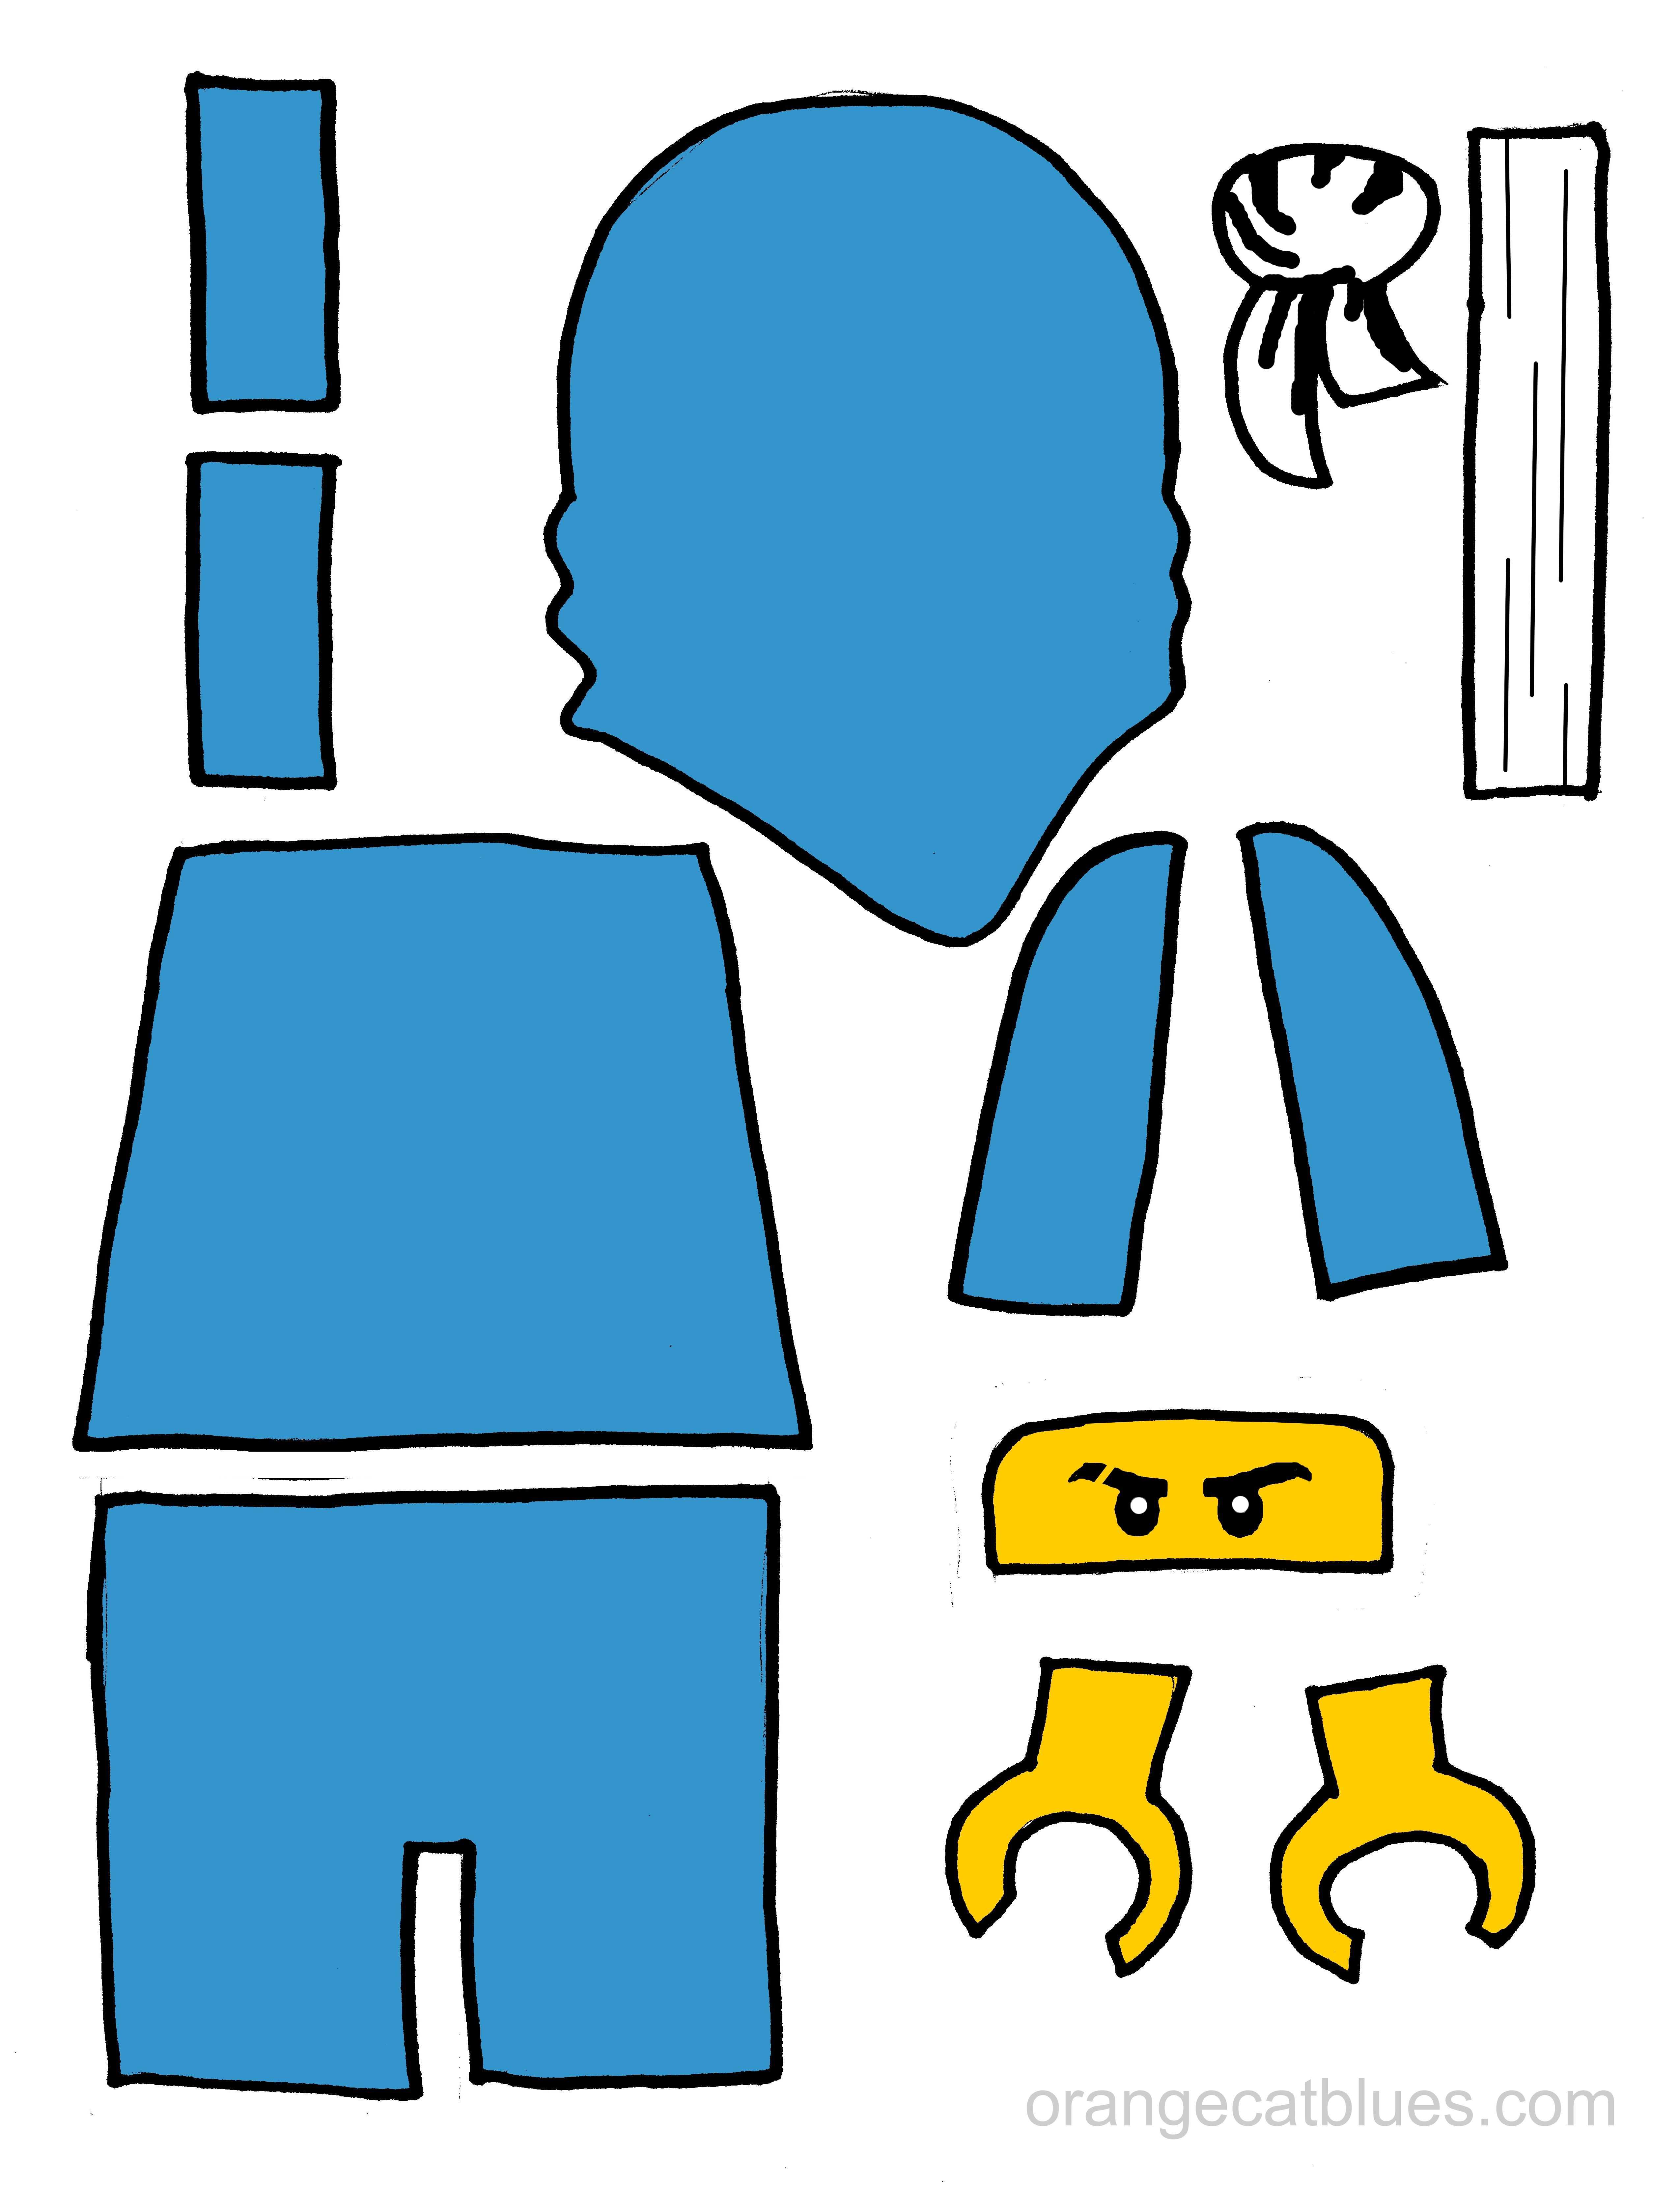 5100x6641 Lego Ninjago Printable Cutout For Toddler Gluestick Art The Blue